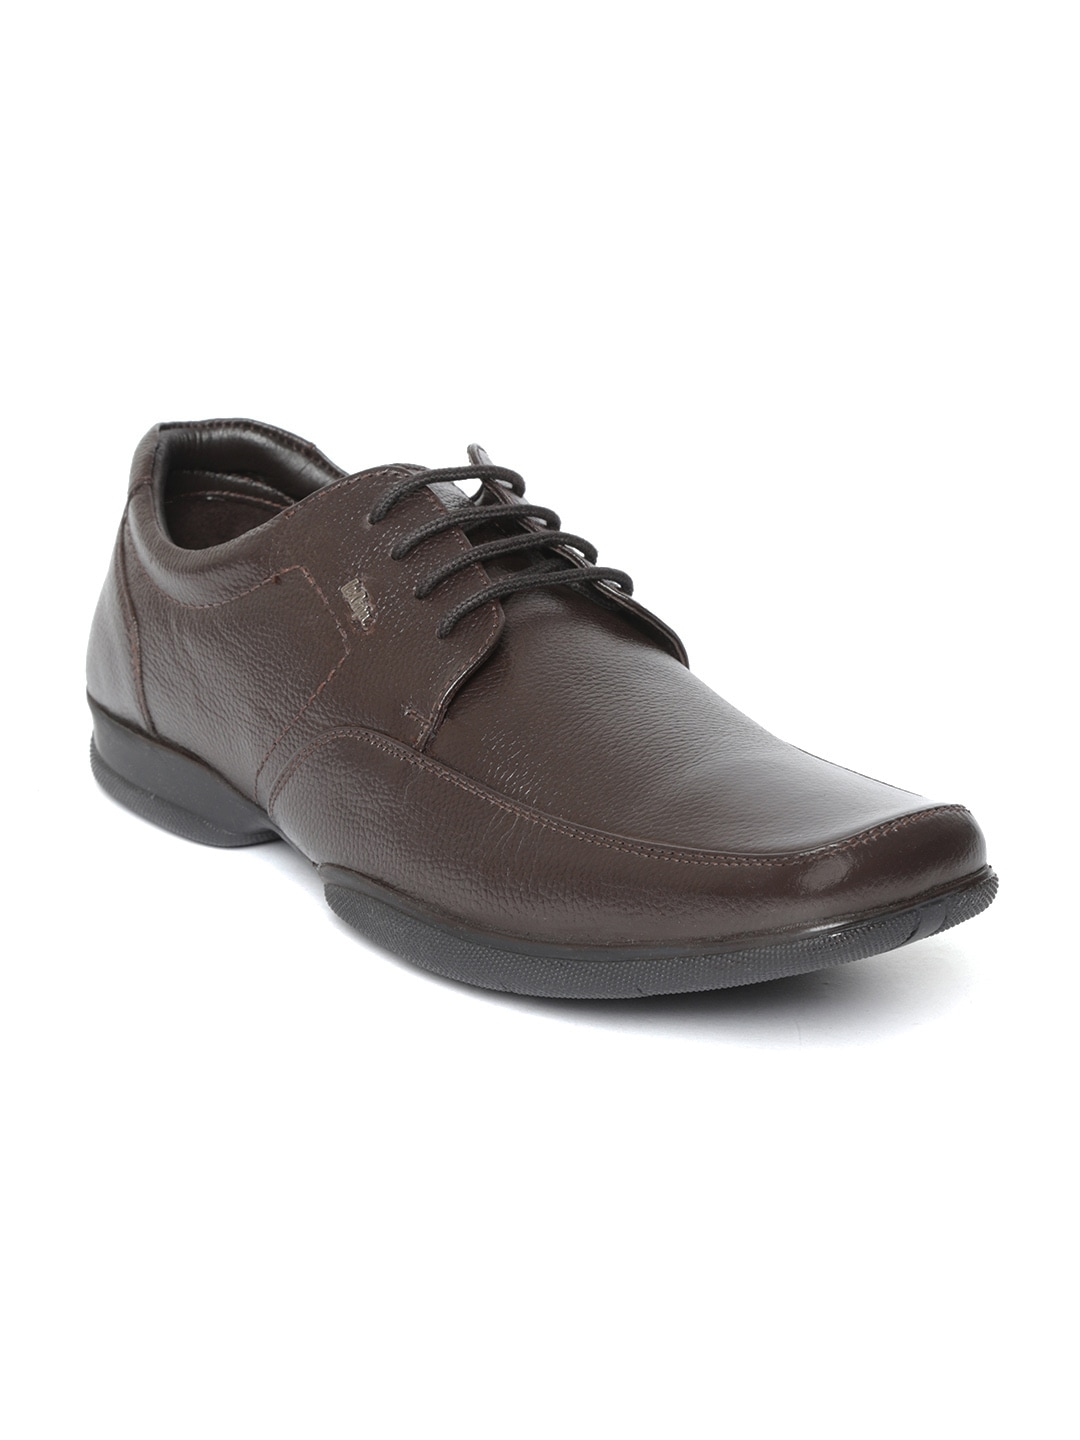 Search Sree Leather Formal Shoes Buy Sree Leather Formal Shoes